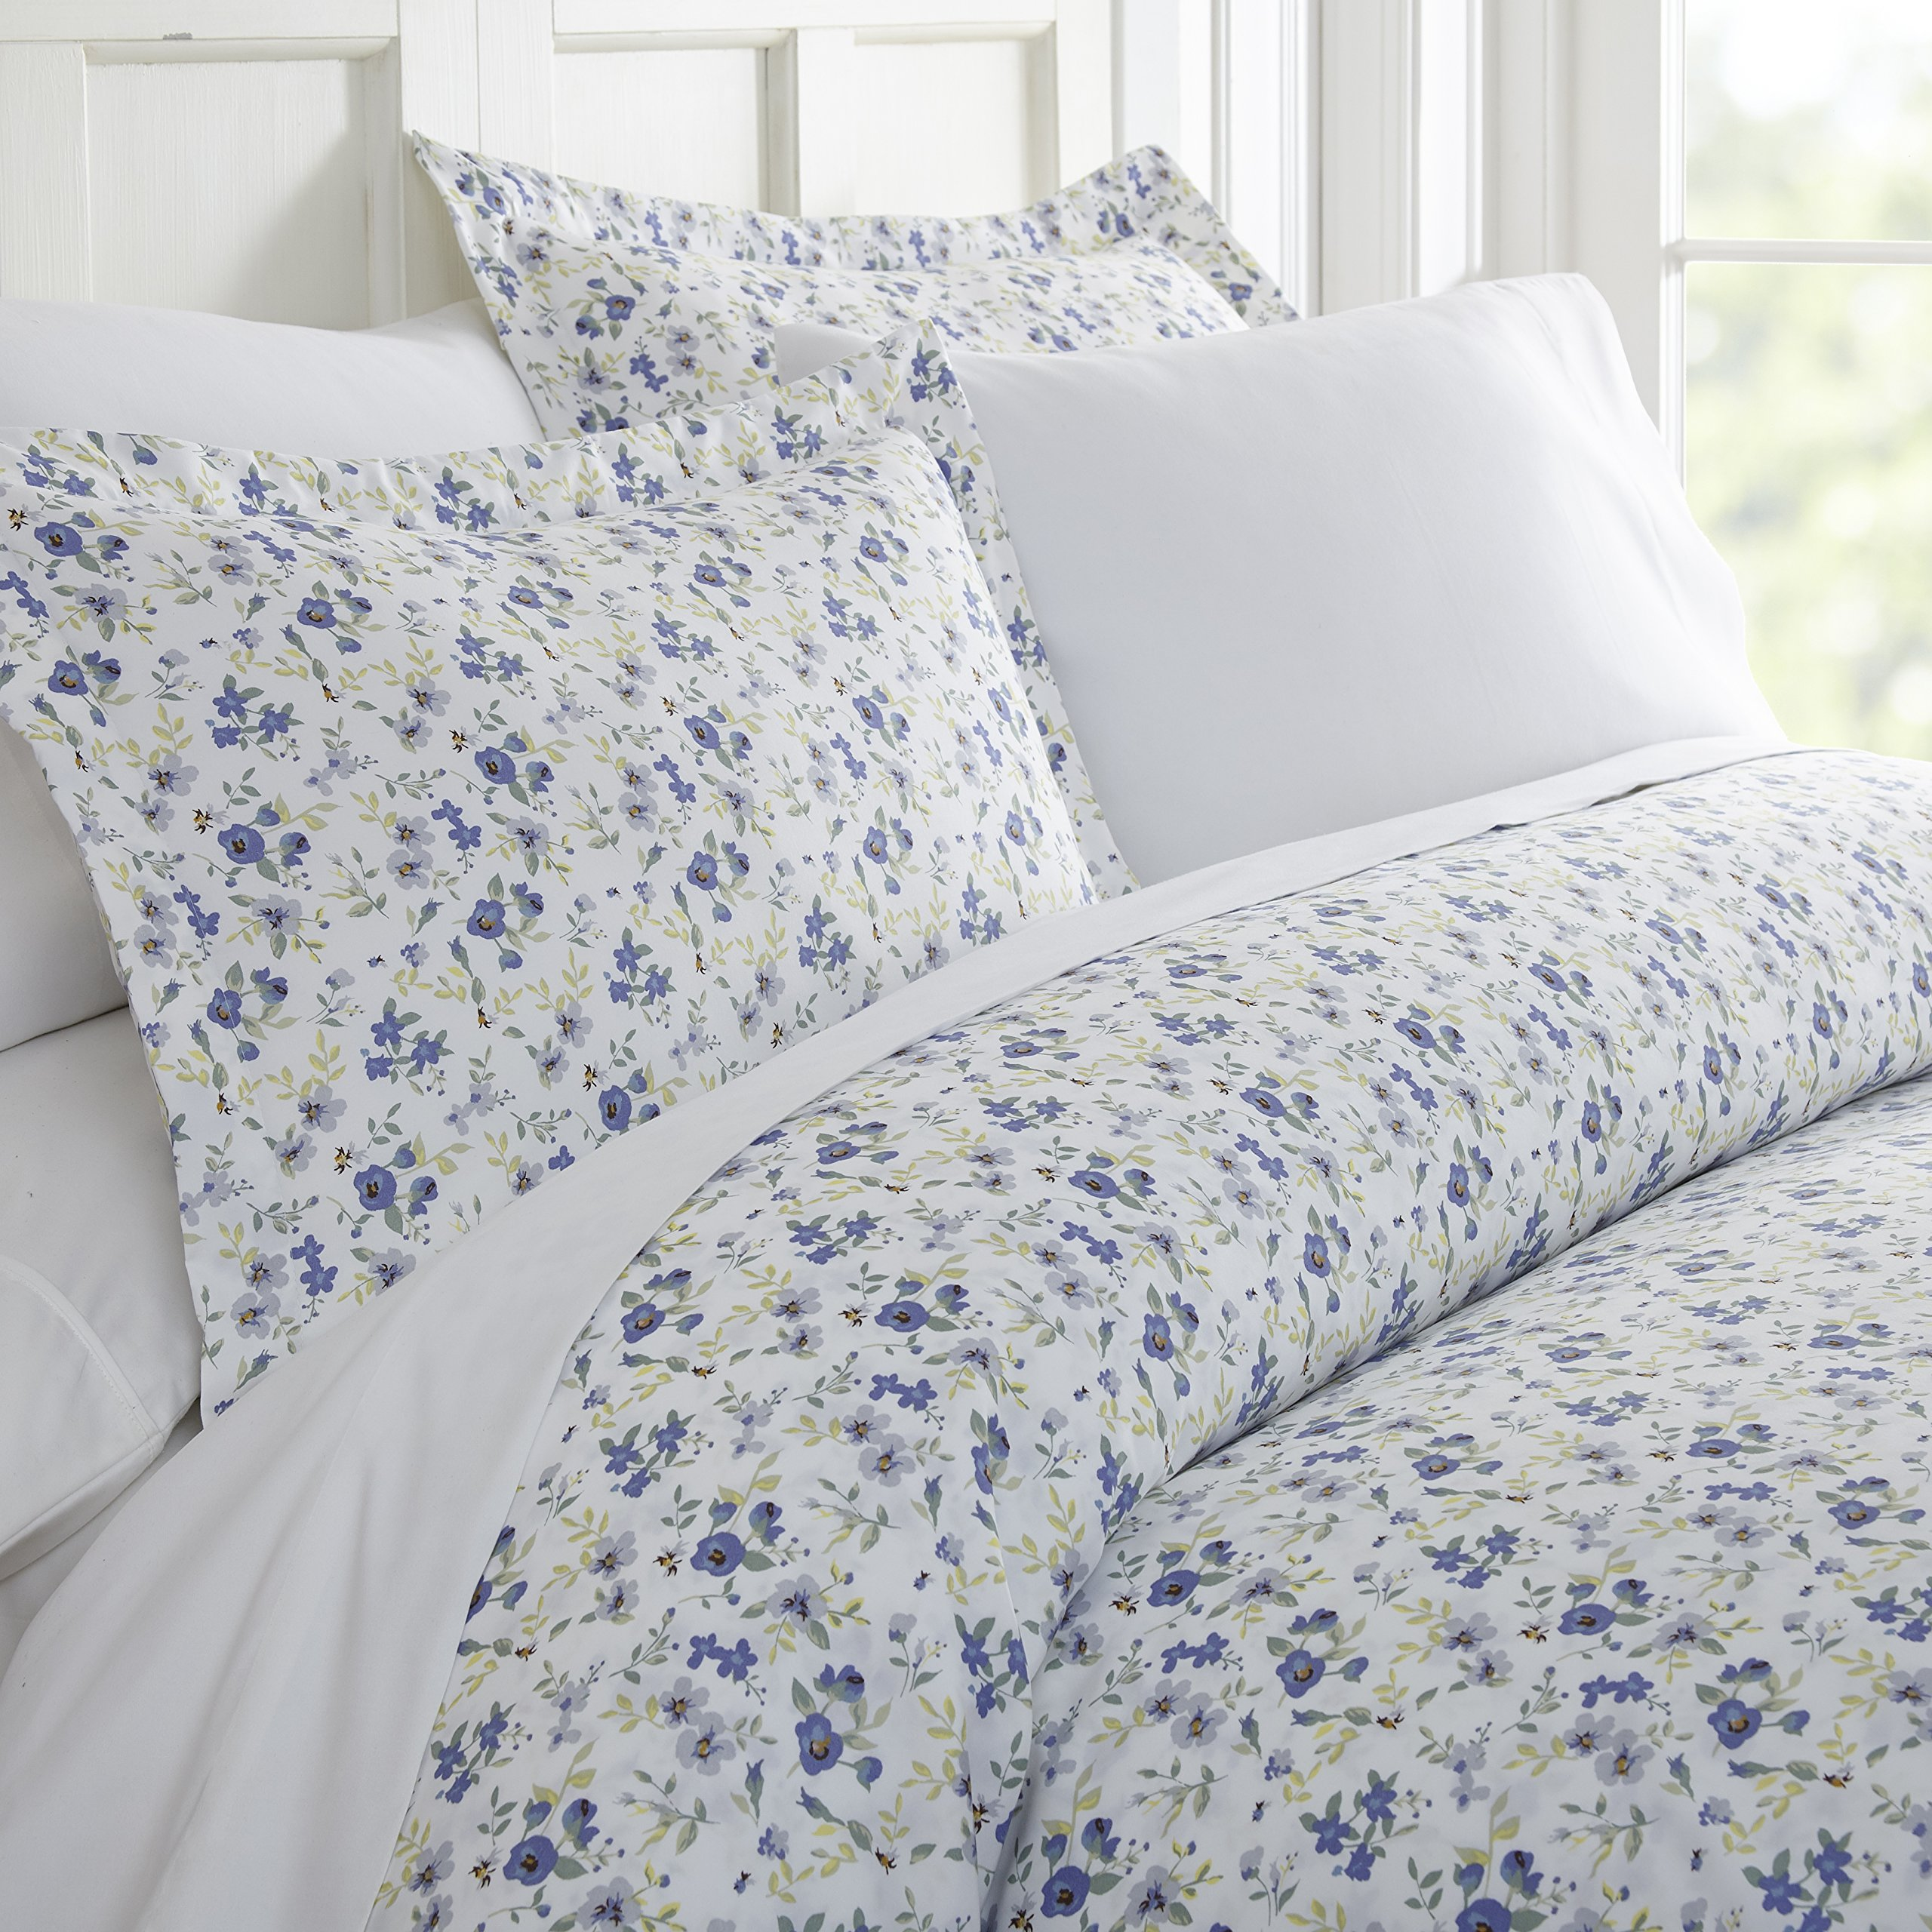 ienjoy Home Duvet Cover Set Blossoms Patterned KingLight Blue